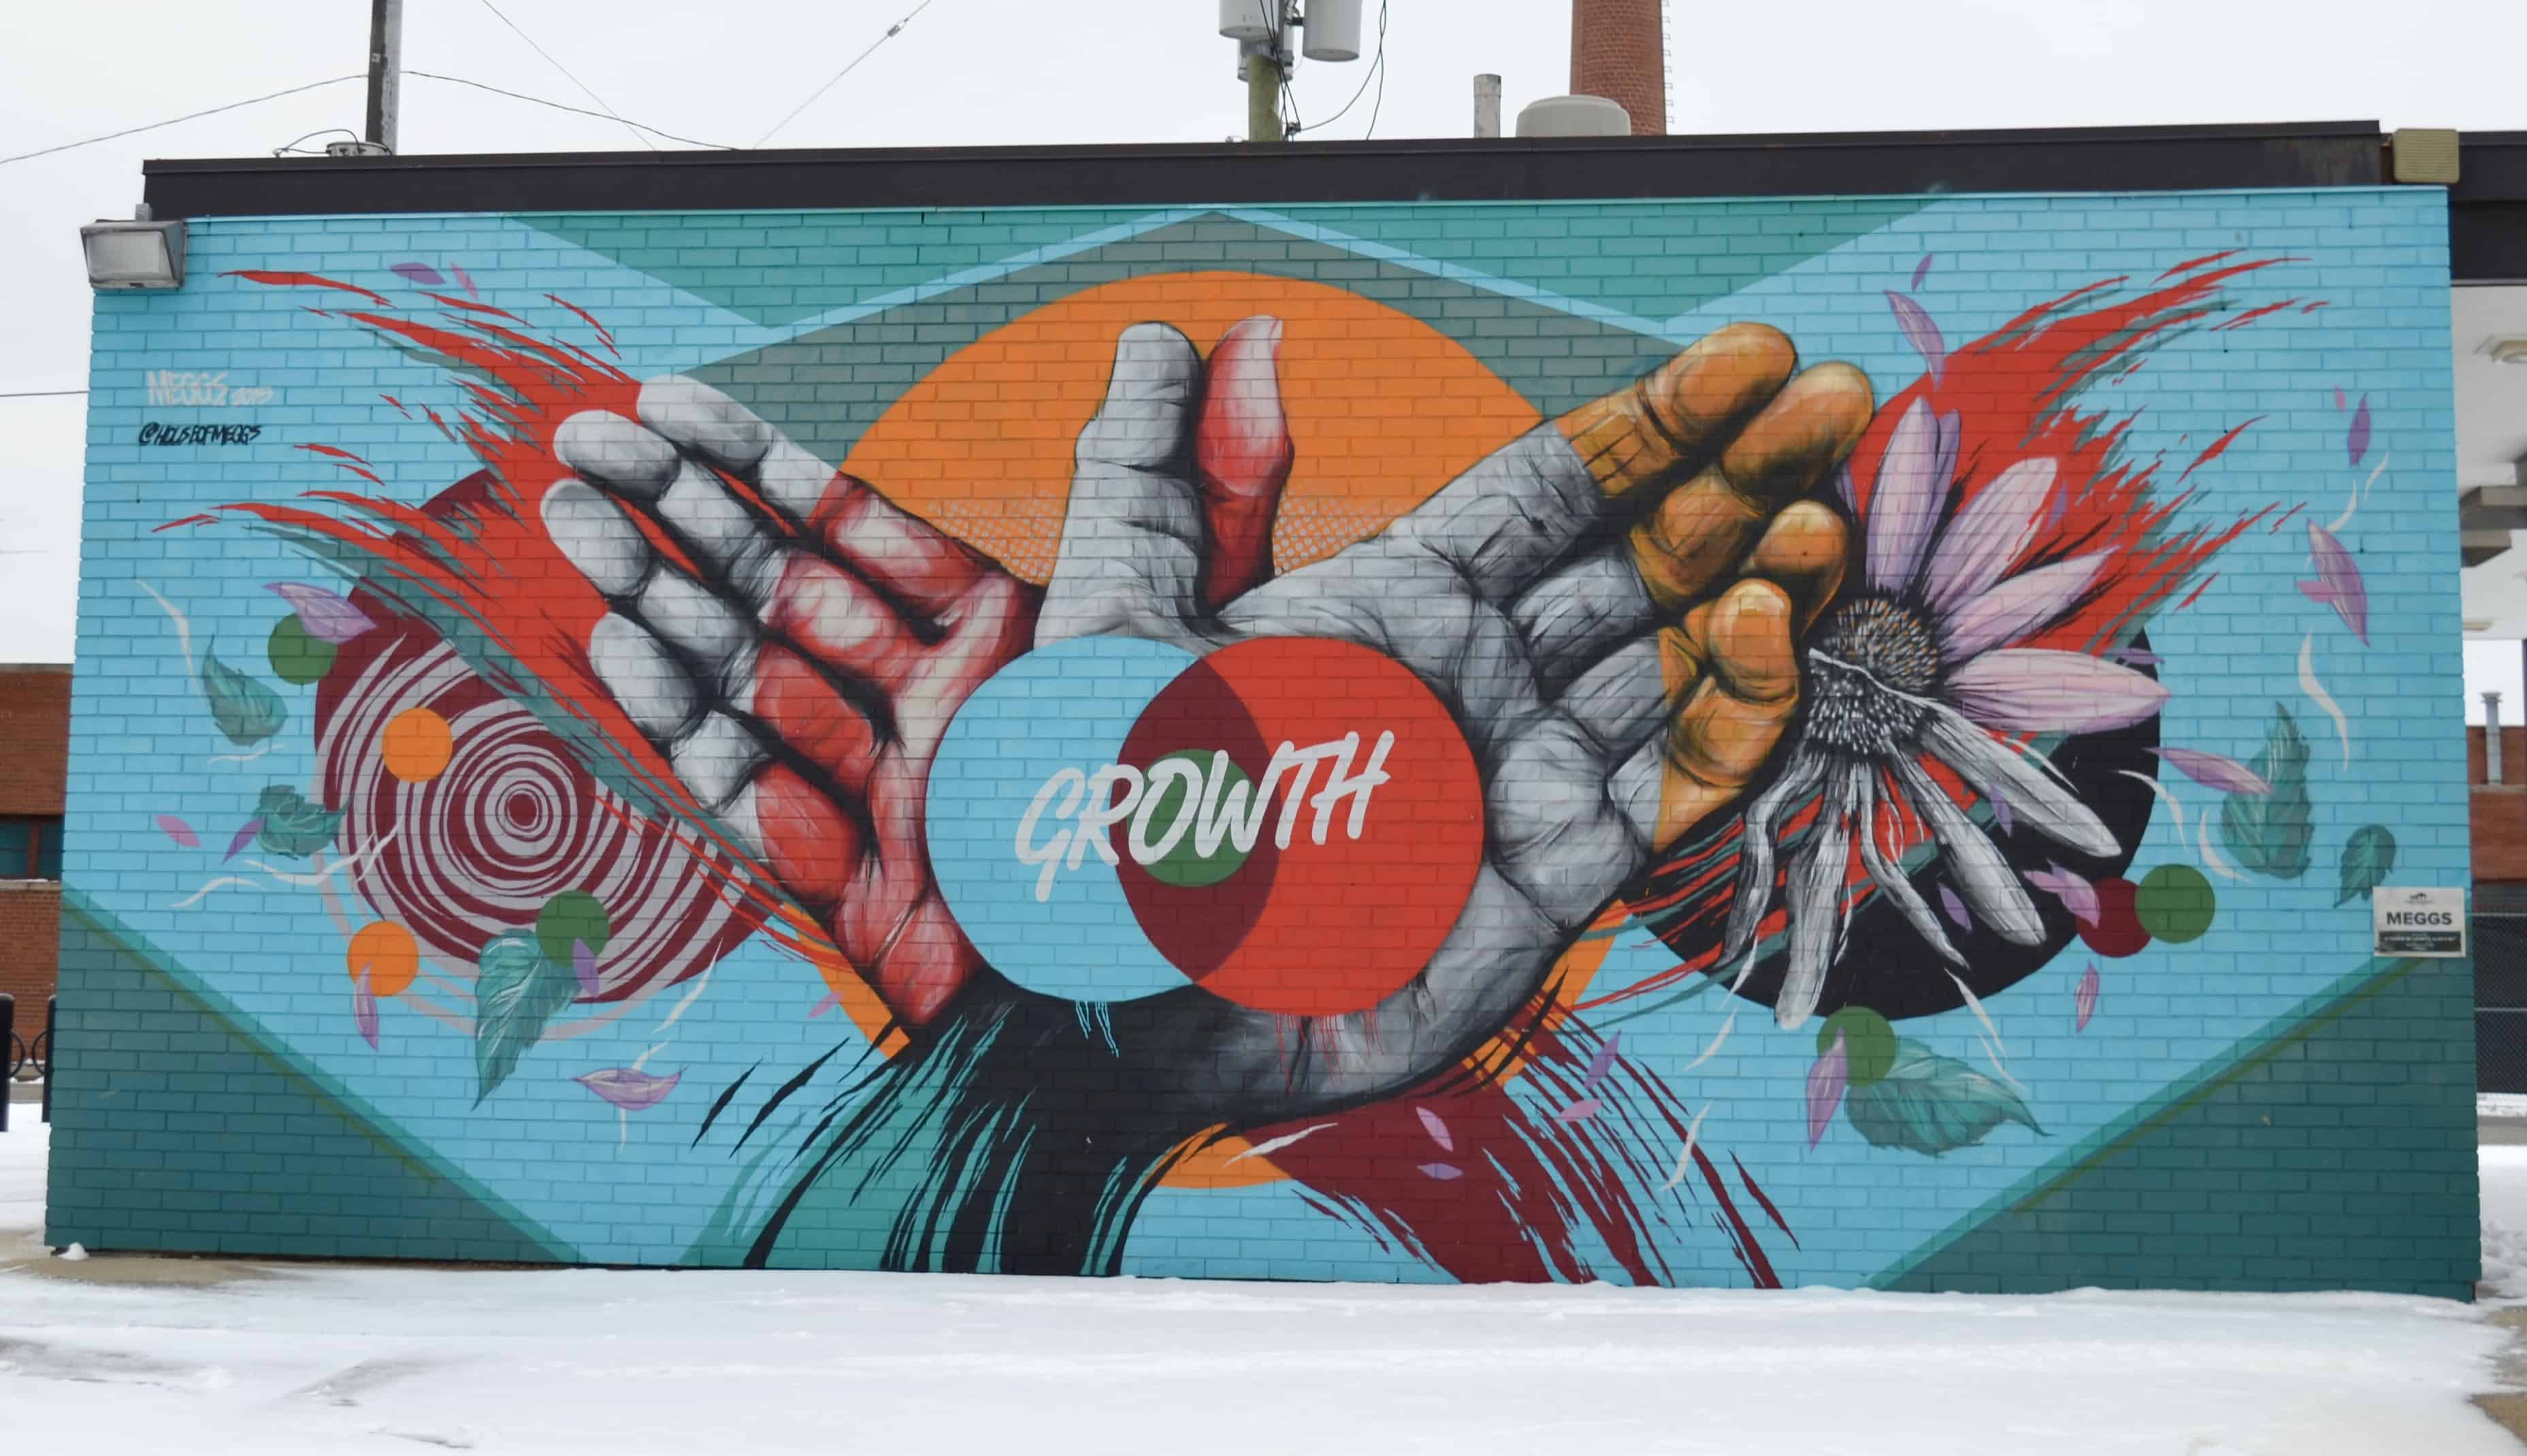 growth hands art mural detroit